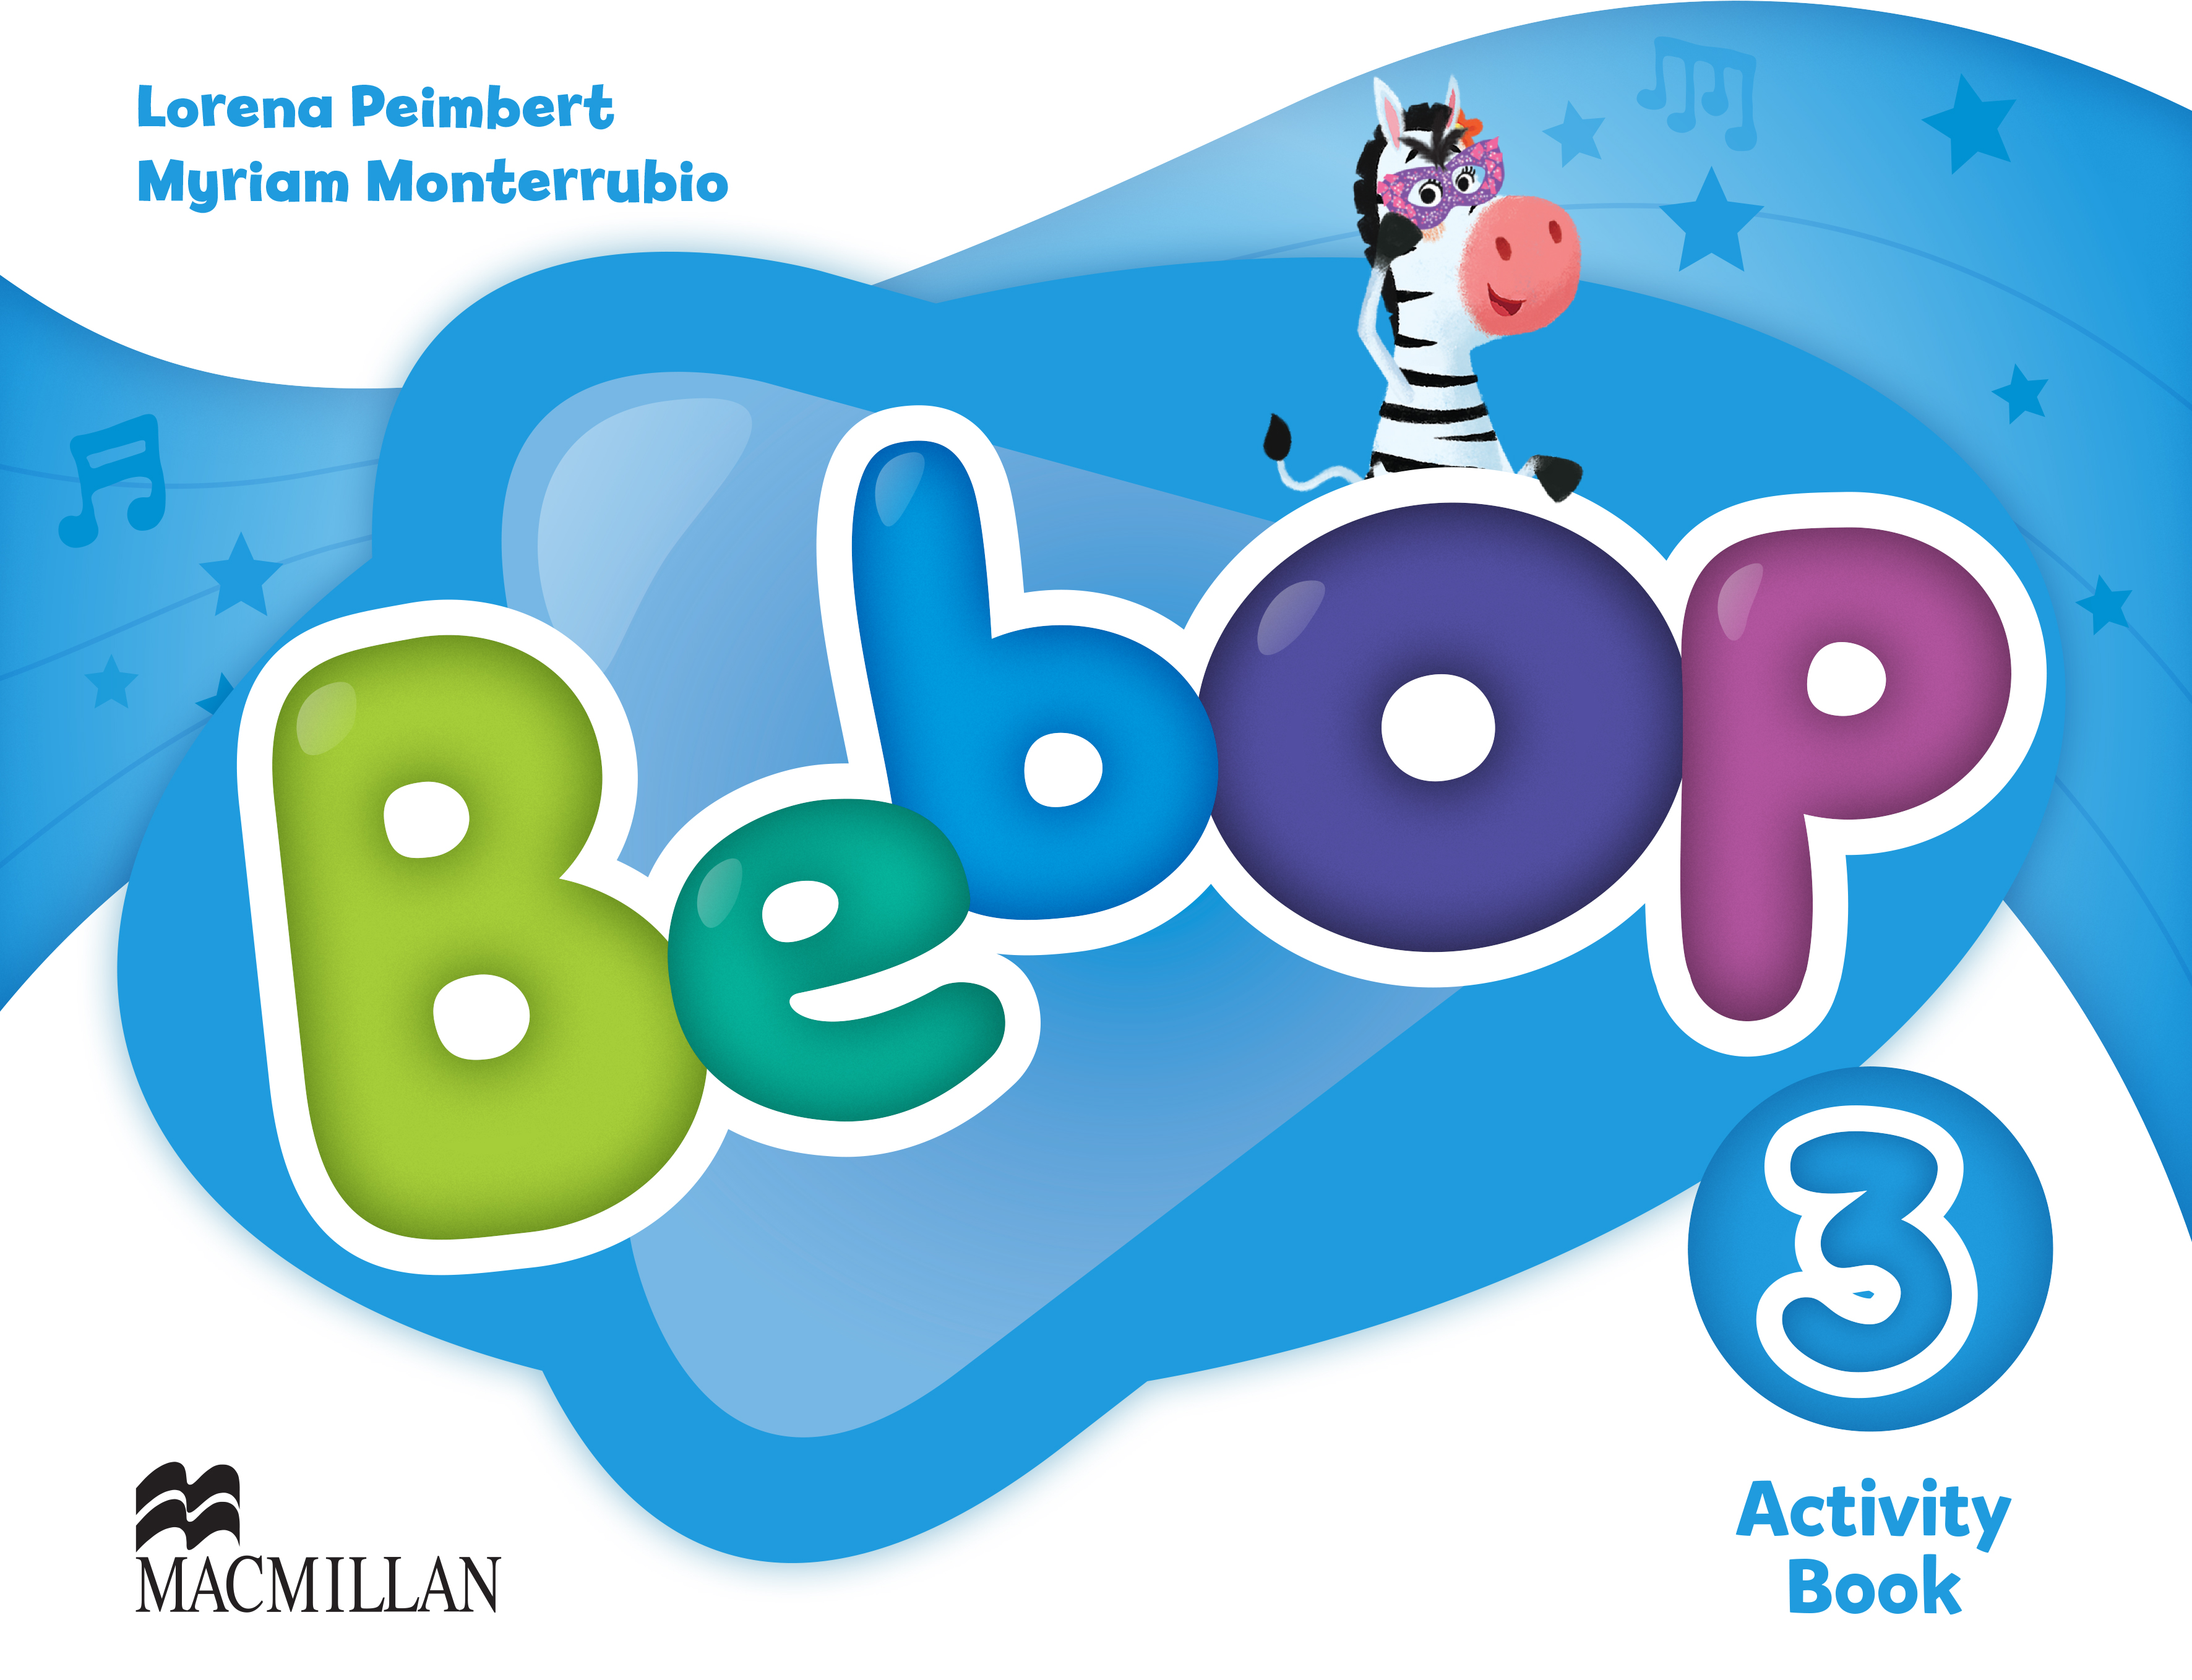 Bebop Level 3 Activity Book